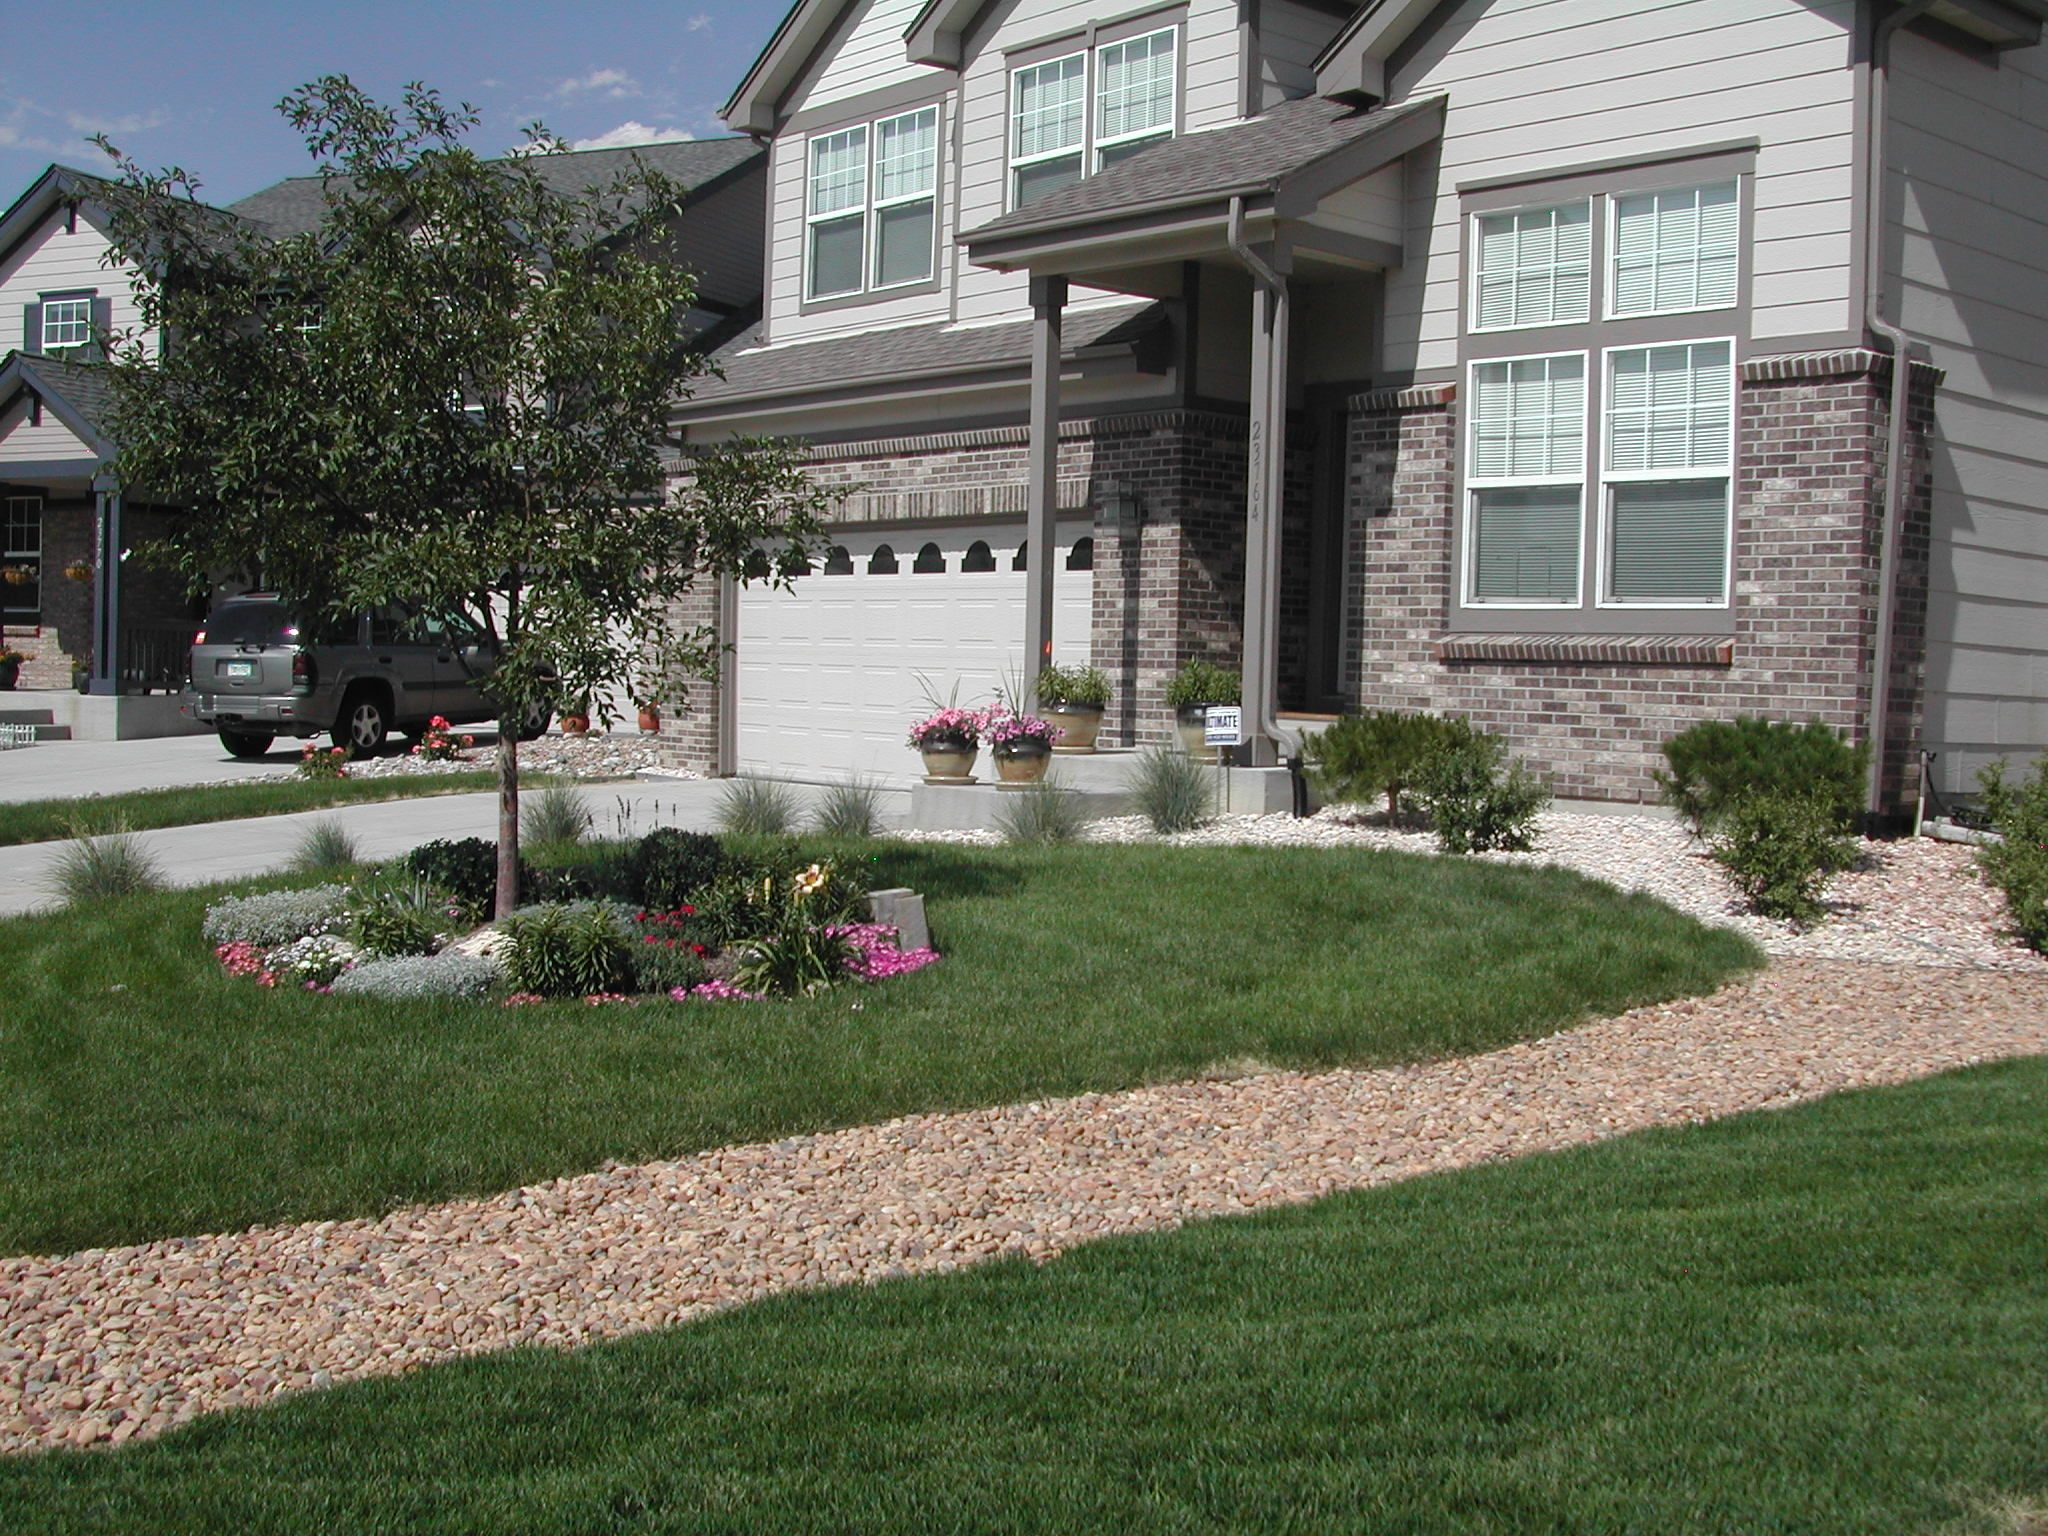 Home Improvement Projects Rock Drainagefront Yard Landscapingriver